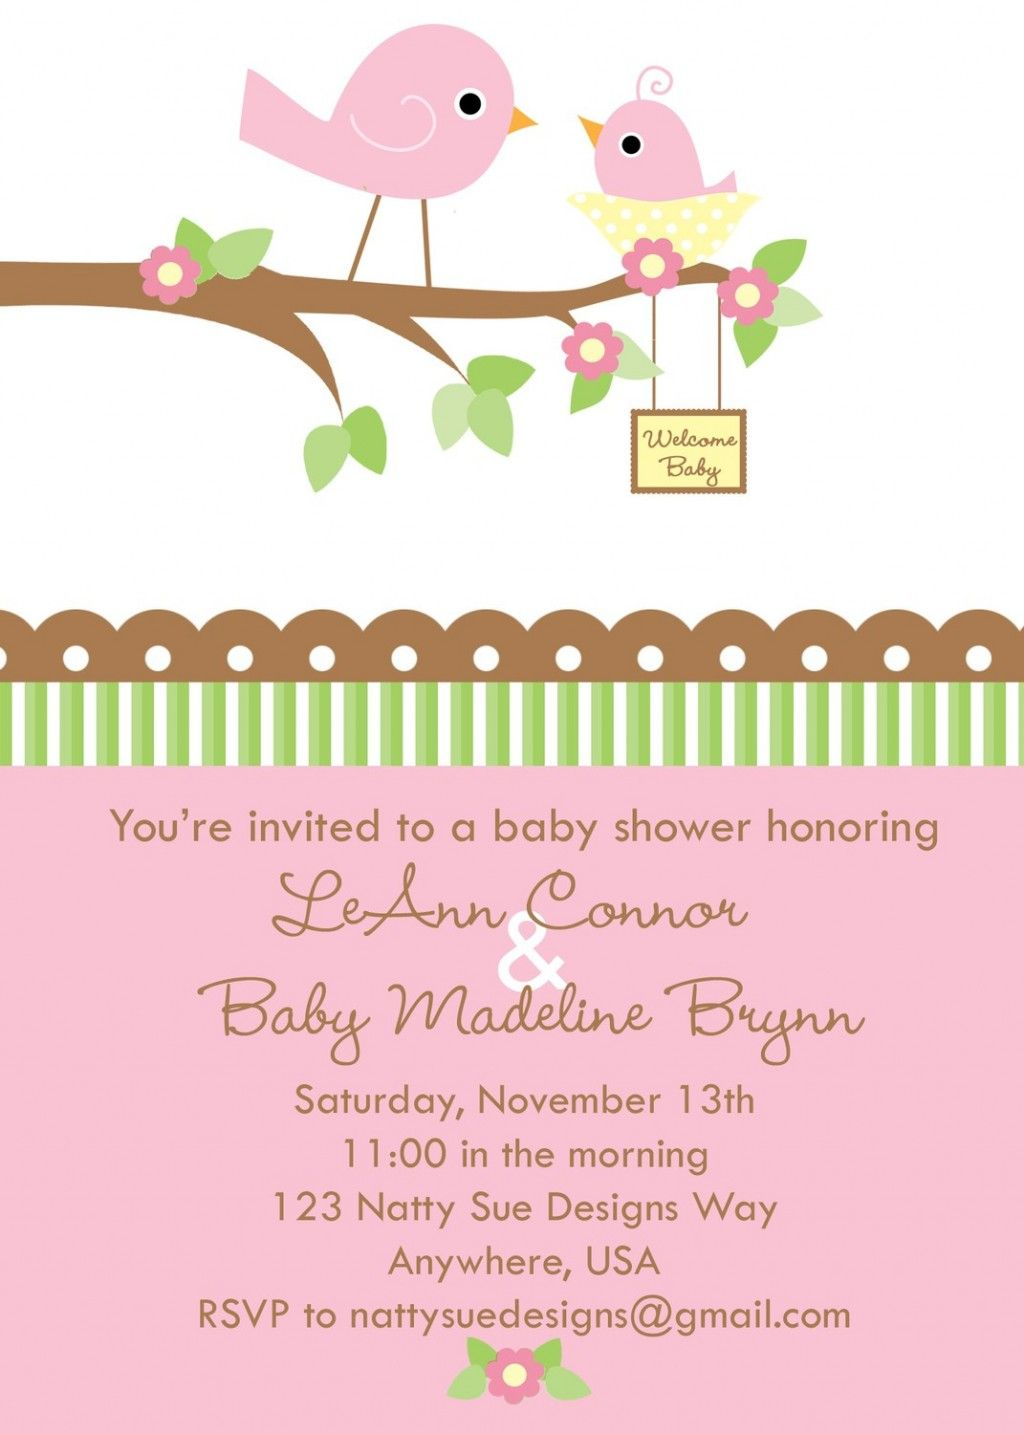 Cute Pink Mommy And Baby Bird Baby Shower Invitation With Brown Tree ...